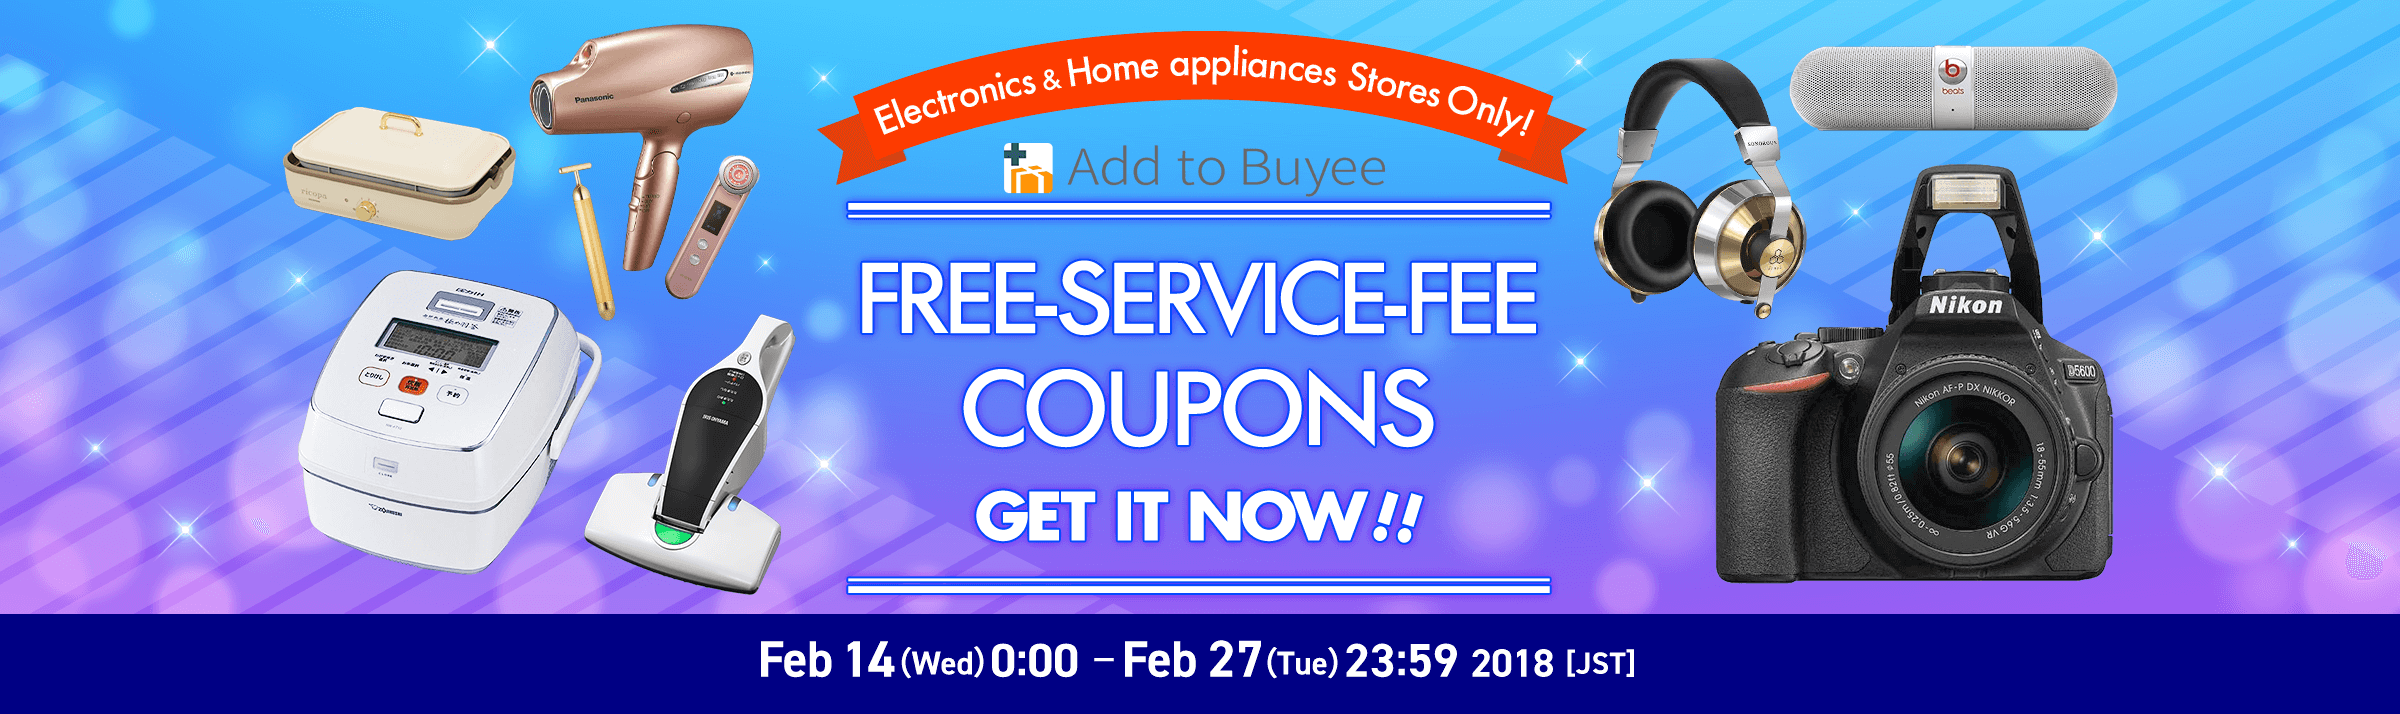 Free Service Fee Coupon Giveaway for Electronics & Home appliances Stores Only!!